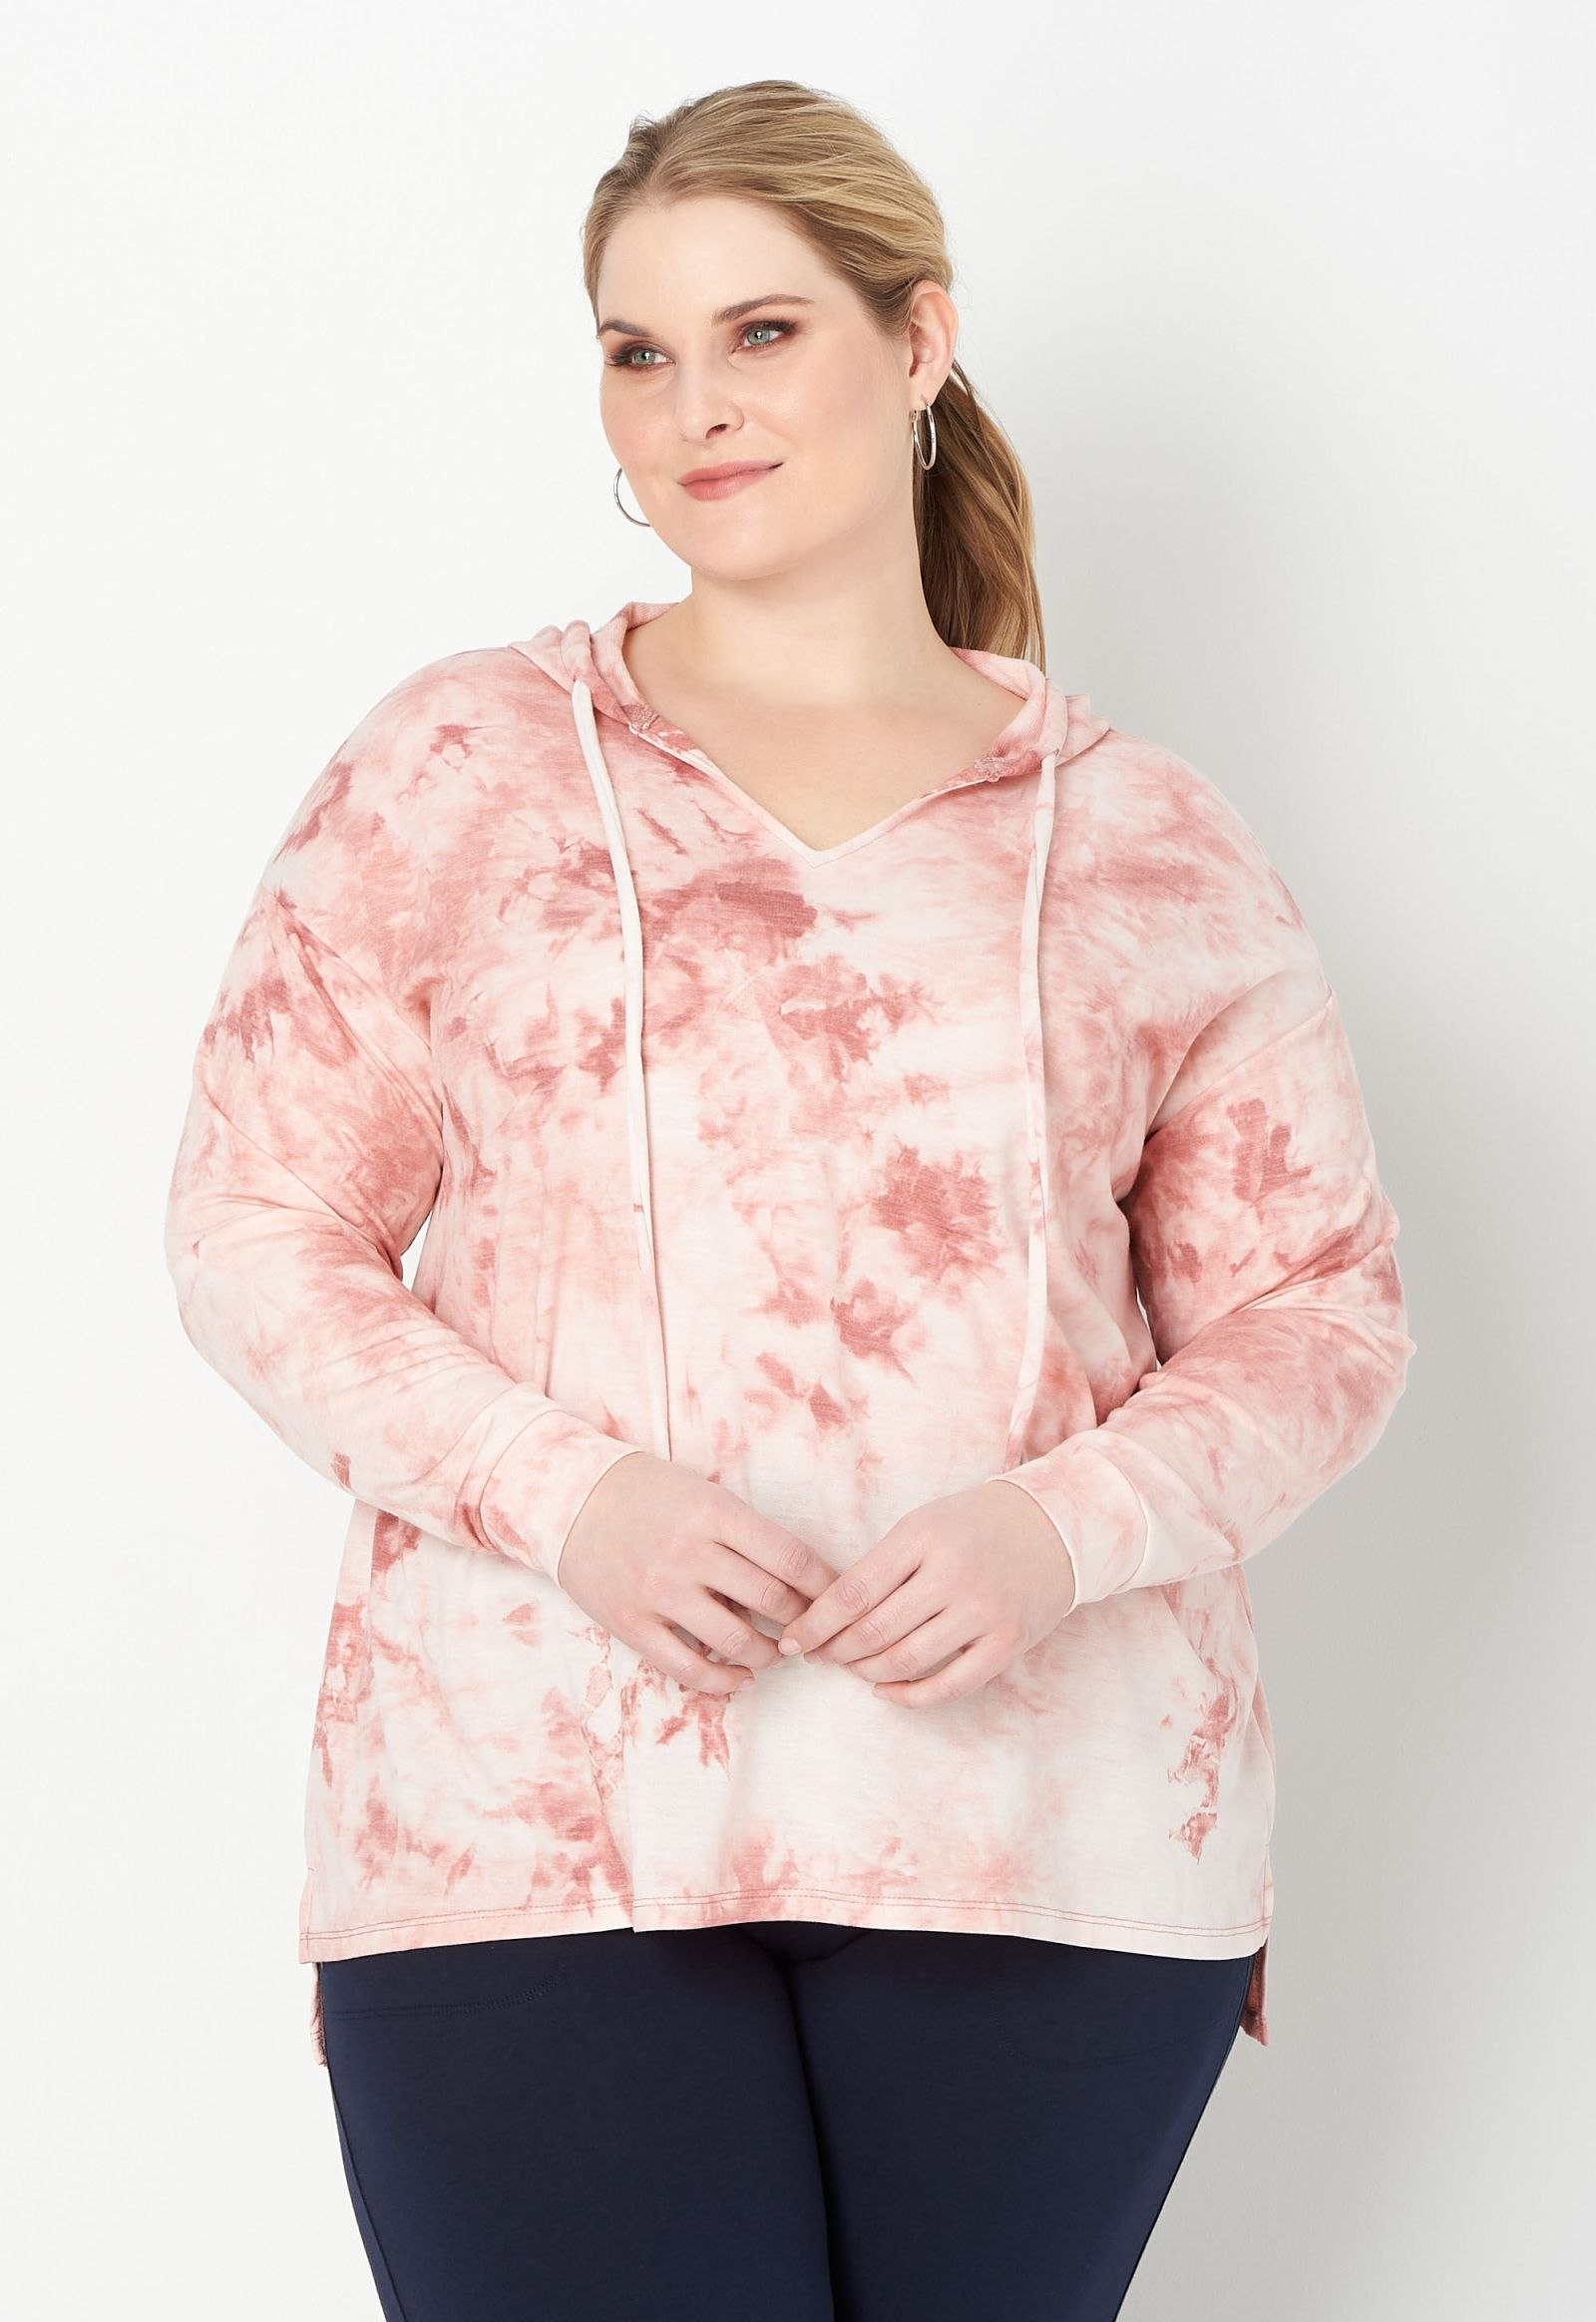 Relaxed Restyled Plus Size Tie Dye Hooded Top 2